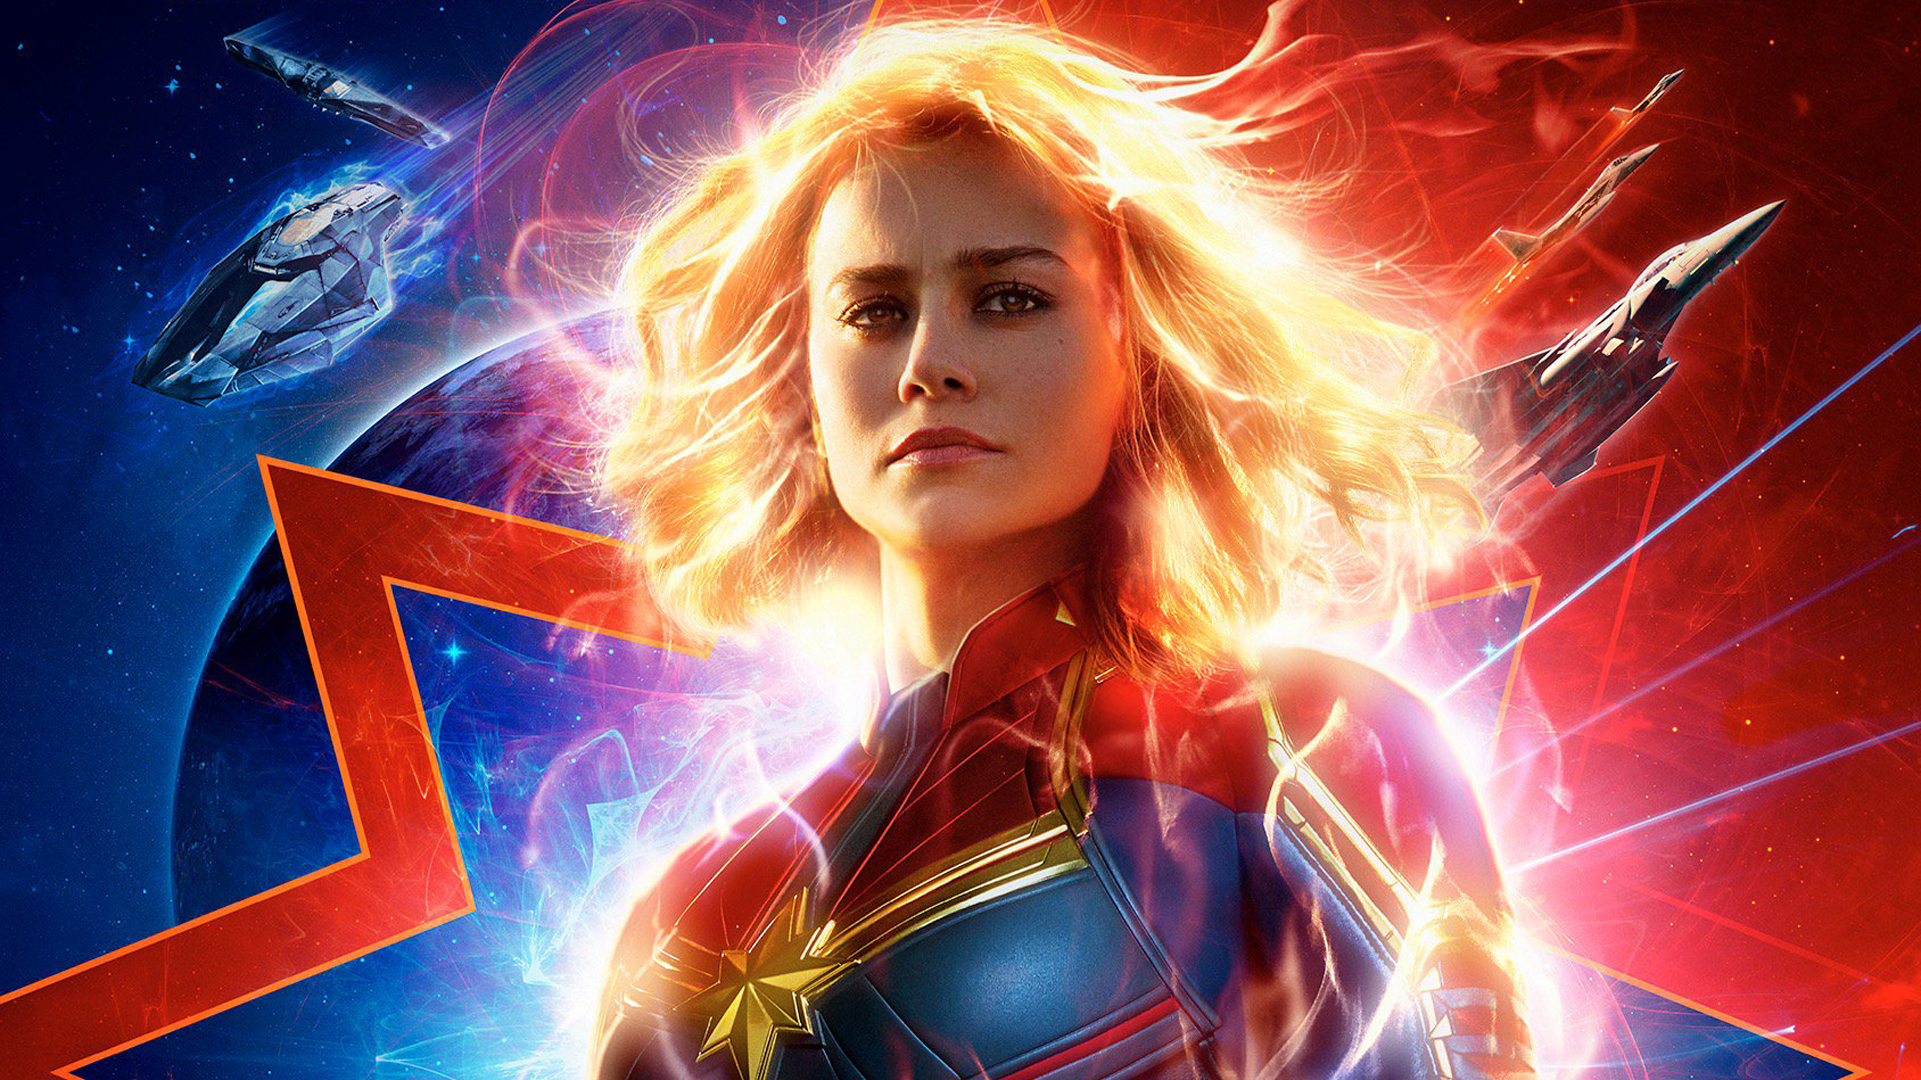 Movie Poster 2019: Captain Marvel Movie Poster 2019, HD Movies, 4k Wallpapers